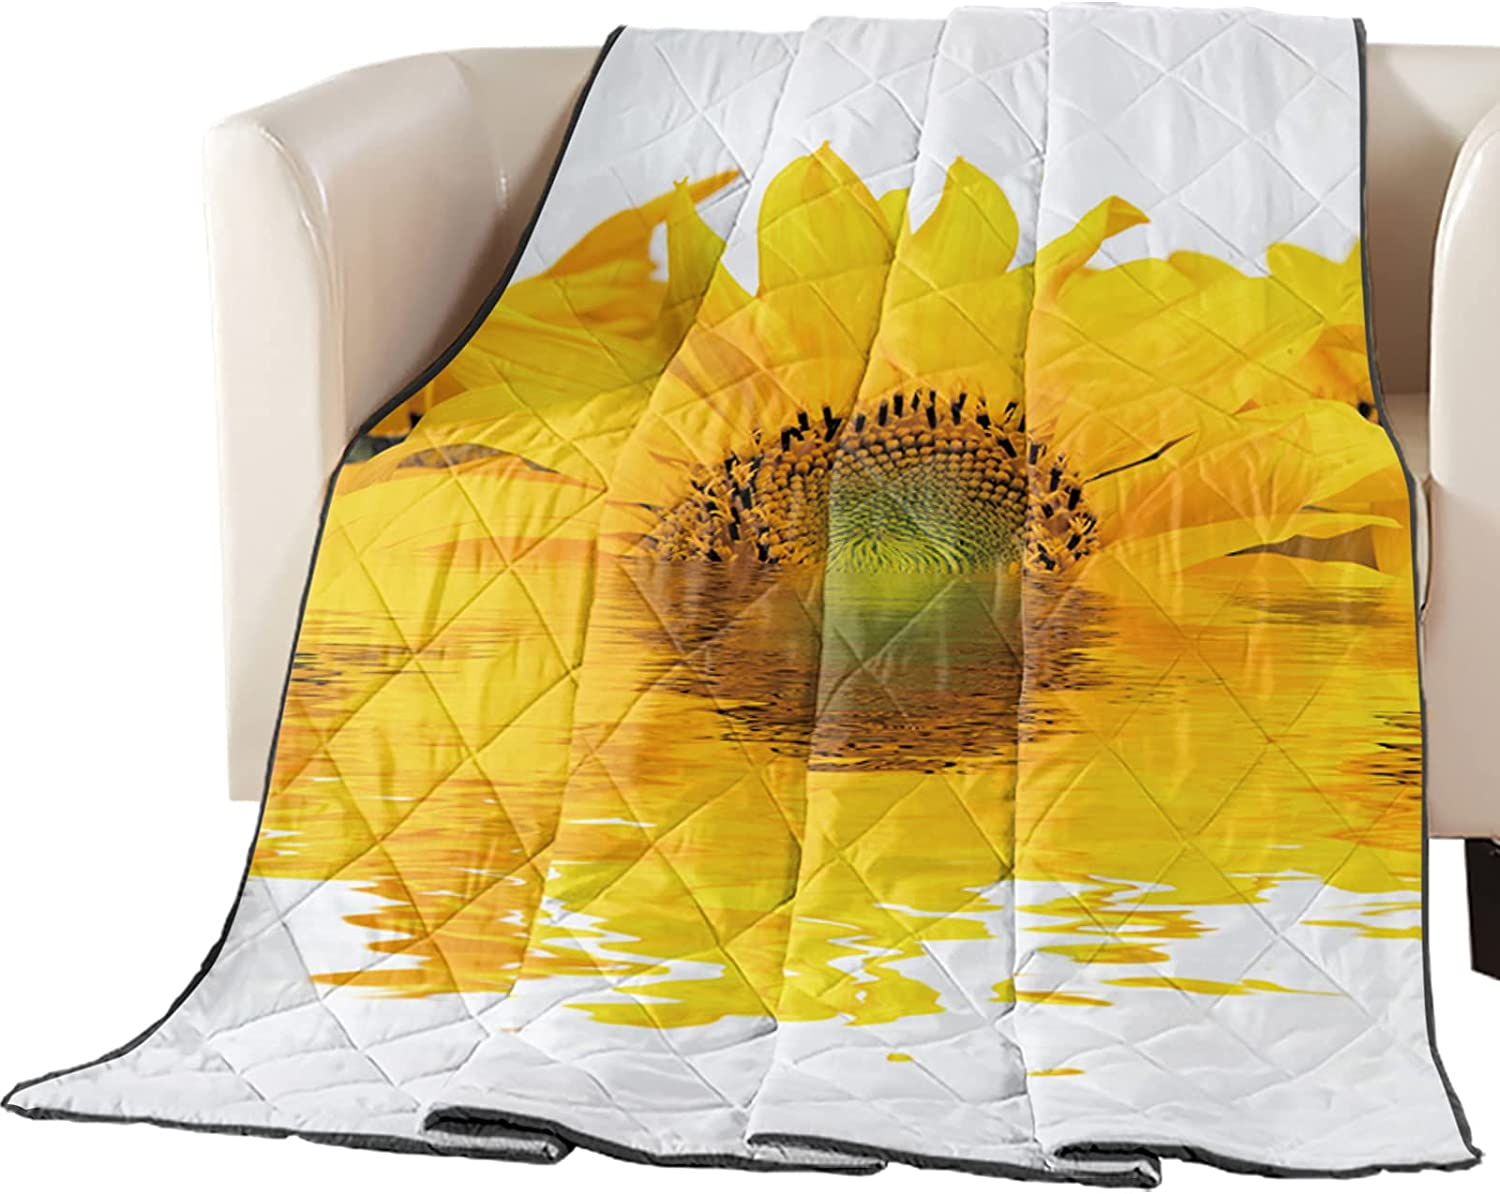 Arts Print Free shipping on posting reviews King Max 71% OFF Size Quilt Soft Bedspread All Lightweight Throw